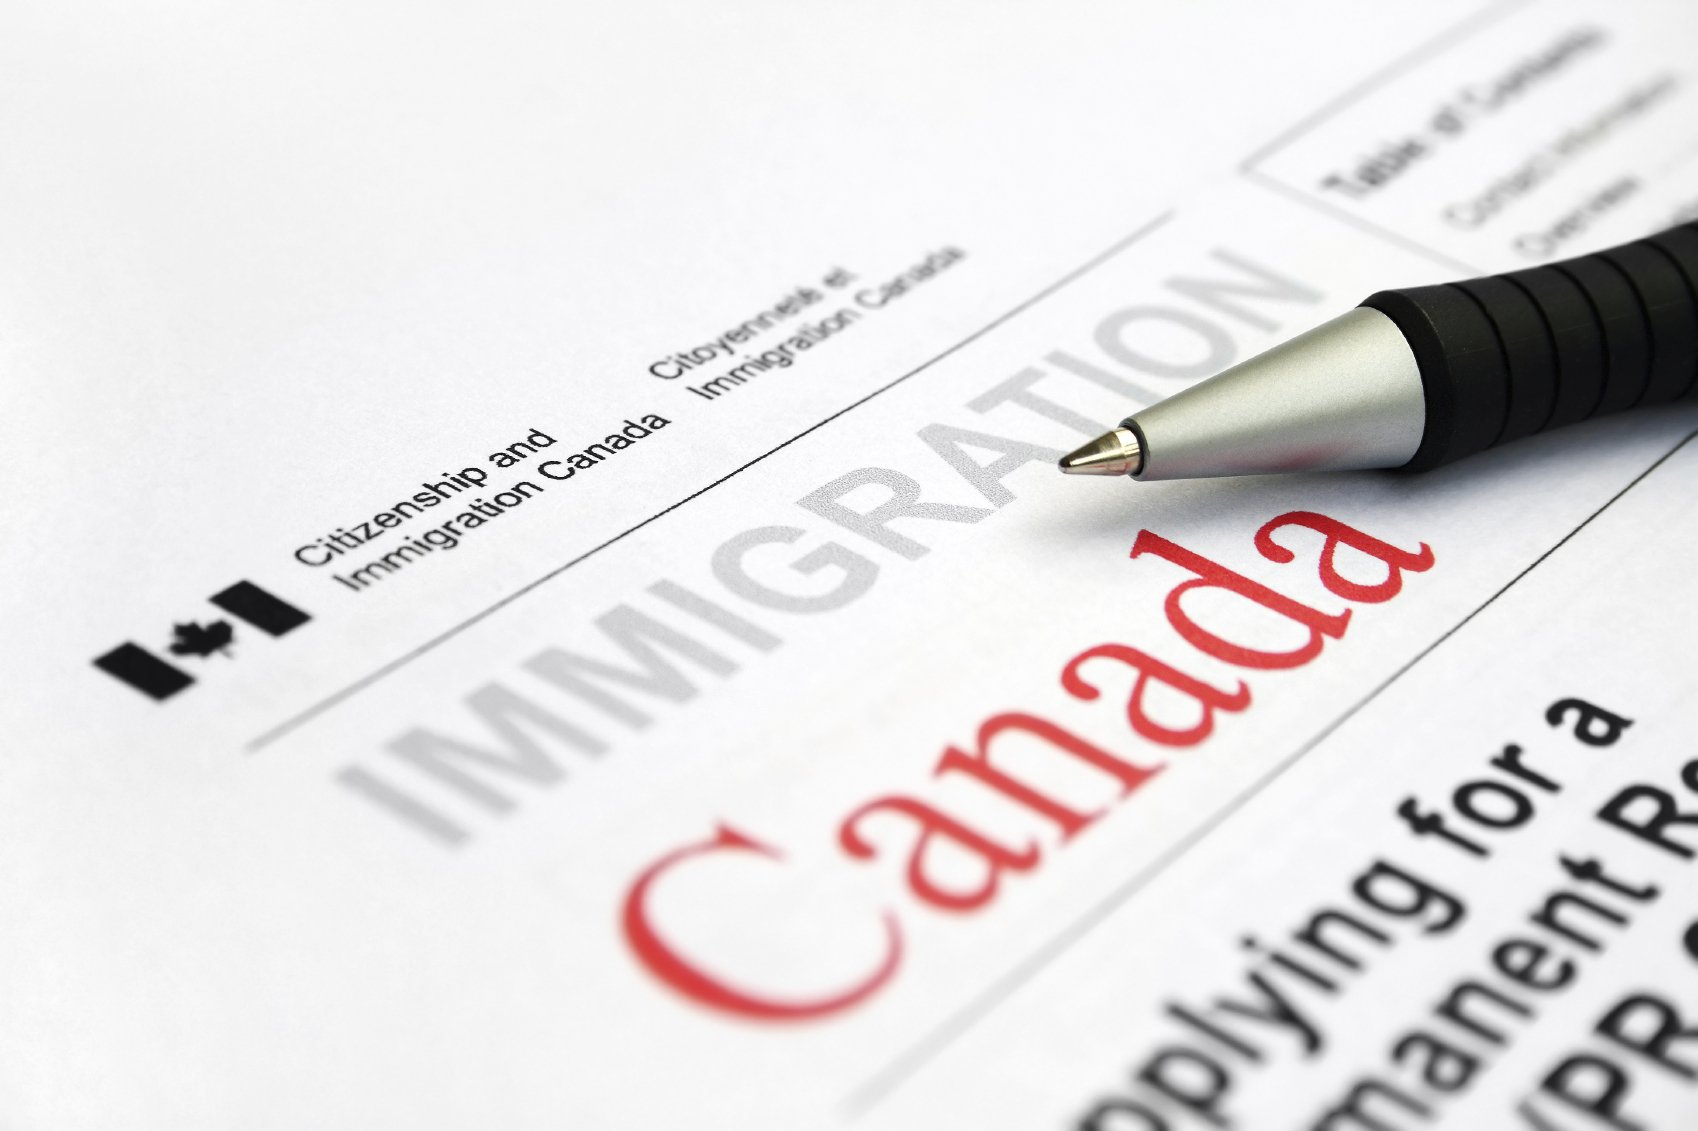 Creating tomorrow's immigration system for Canada